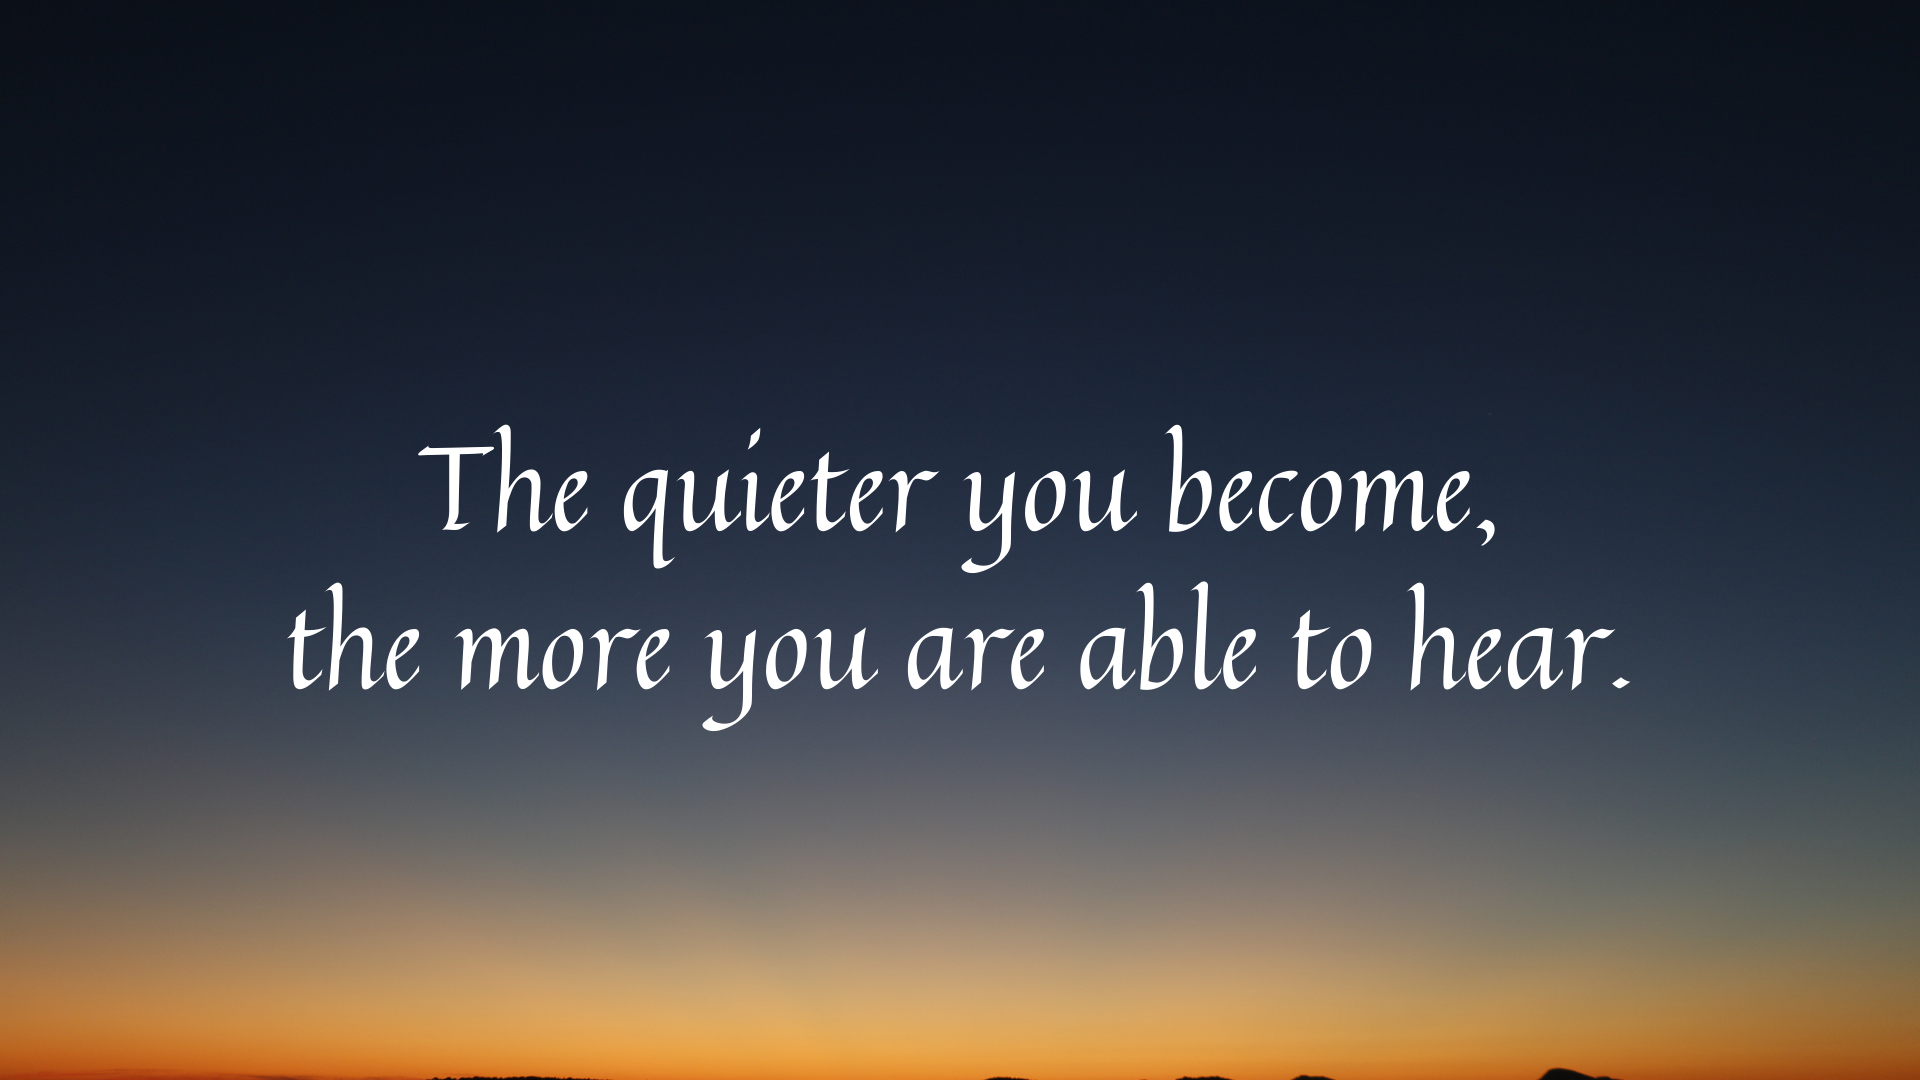 The quieter you become, the more you are able to hear. https://inspirational.ly